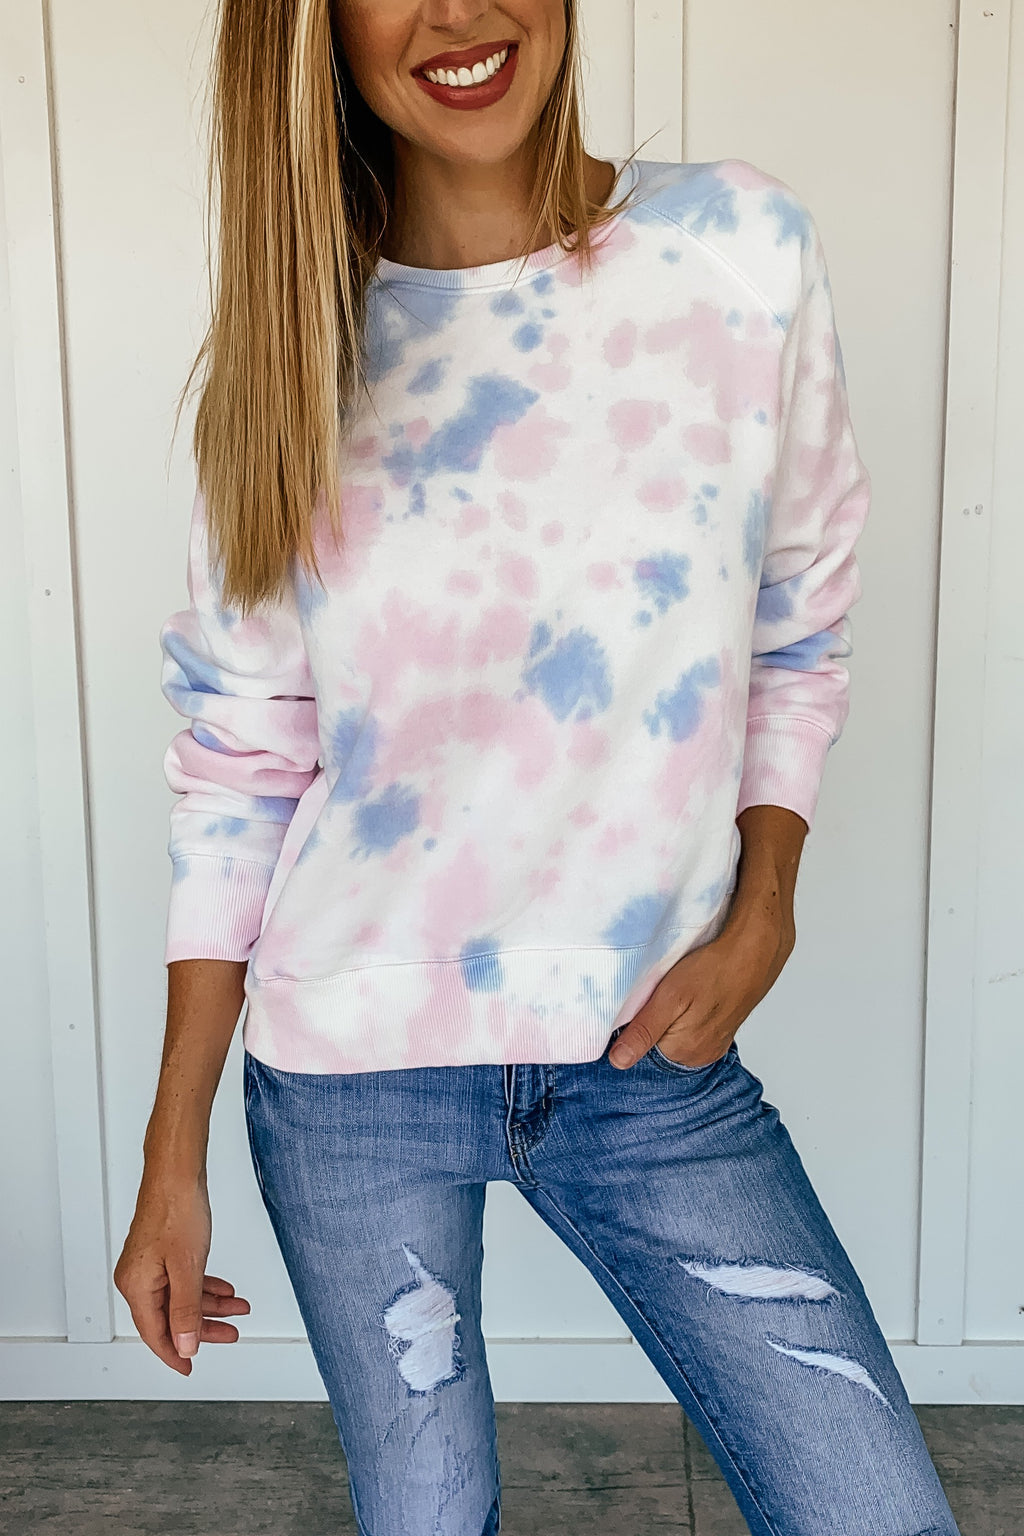 Cotton Candy Tie Dye Sweatshirt